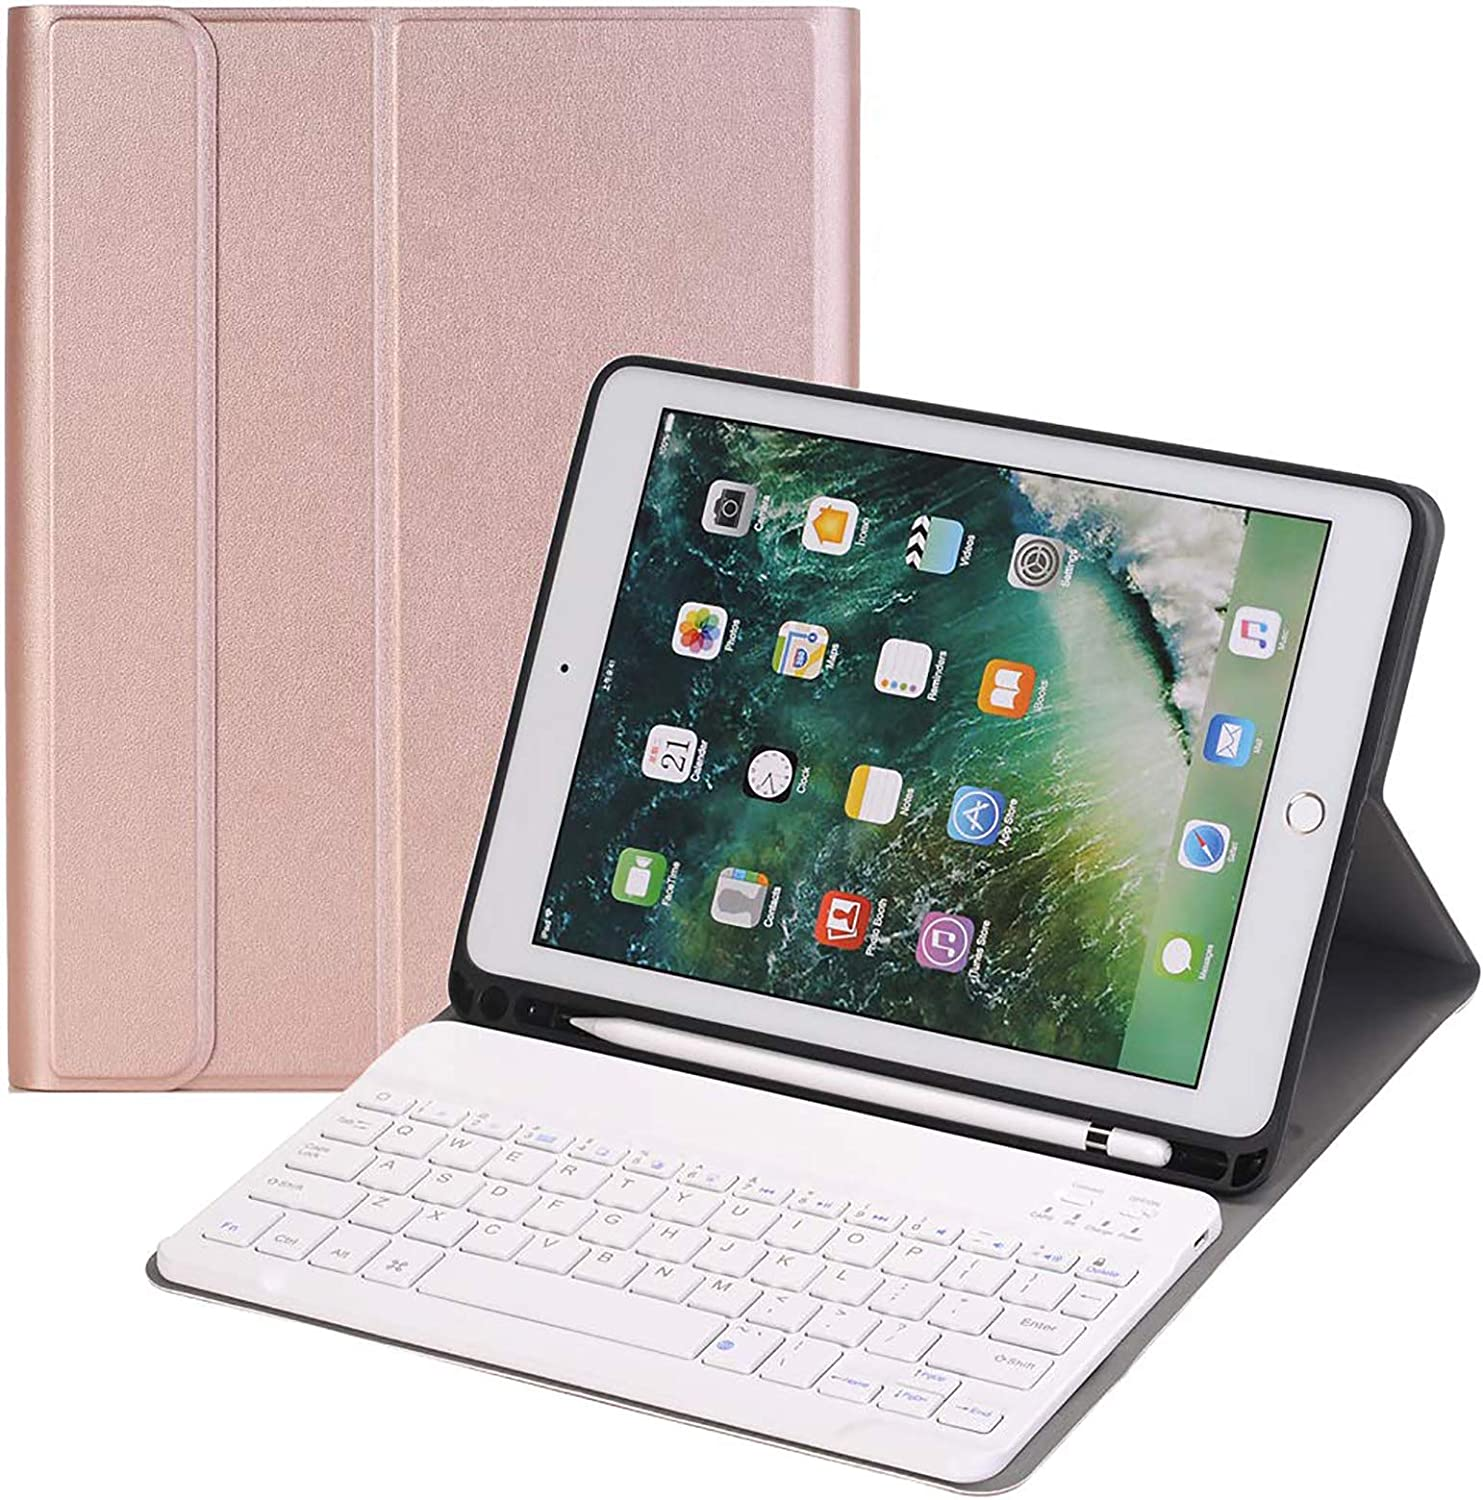 Keyboard Case 10.2 inch for iPad 7th Generation 10.2 2019 iPad 7th Gen, Auto Sleep/Wake Detachable Wireless Bluetooth Keyboard Magnetic Smart Case Cover Built-in Pencil Holder, Rose Gold